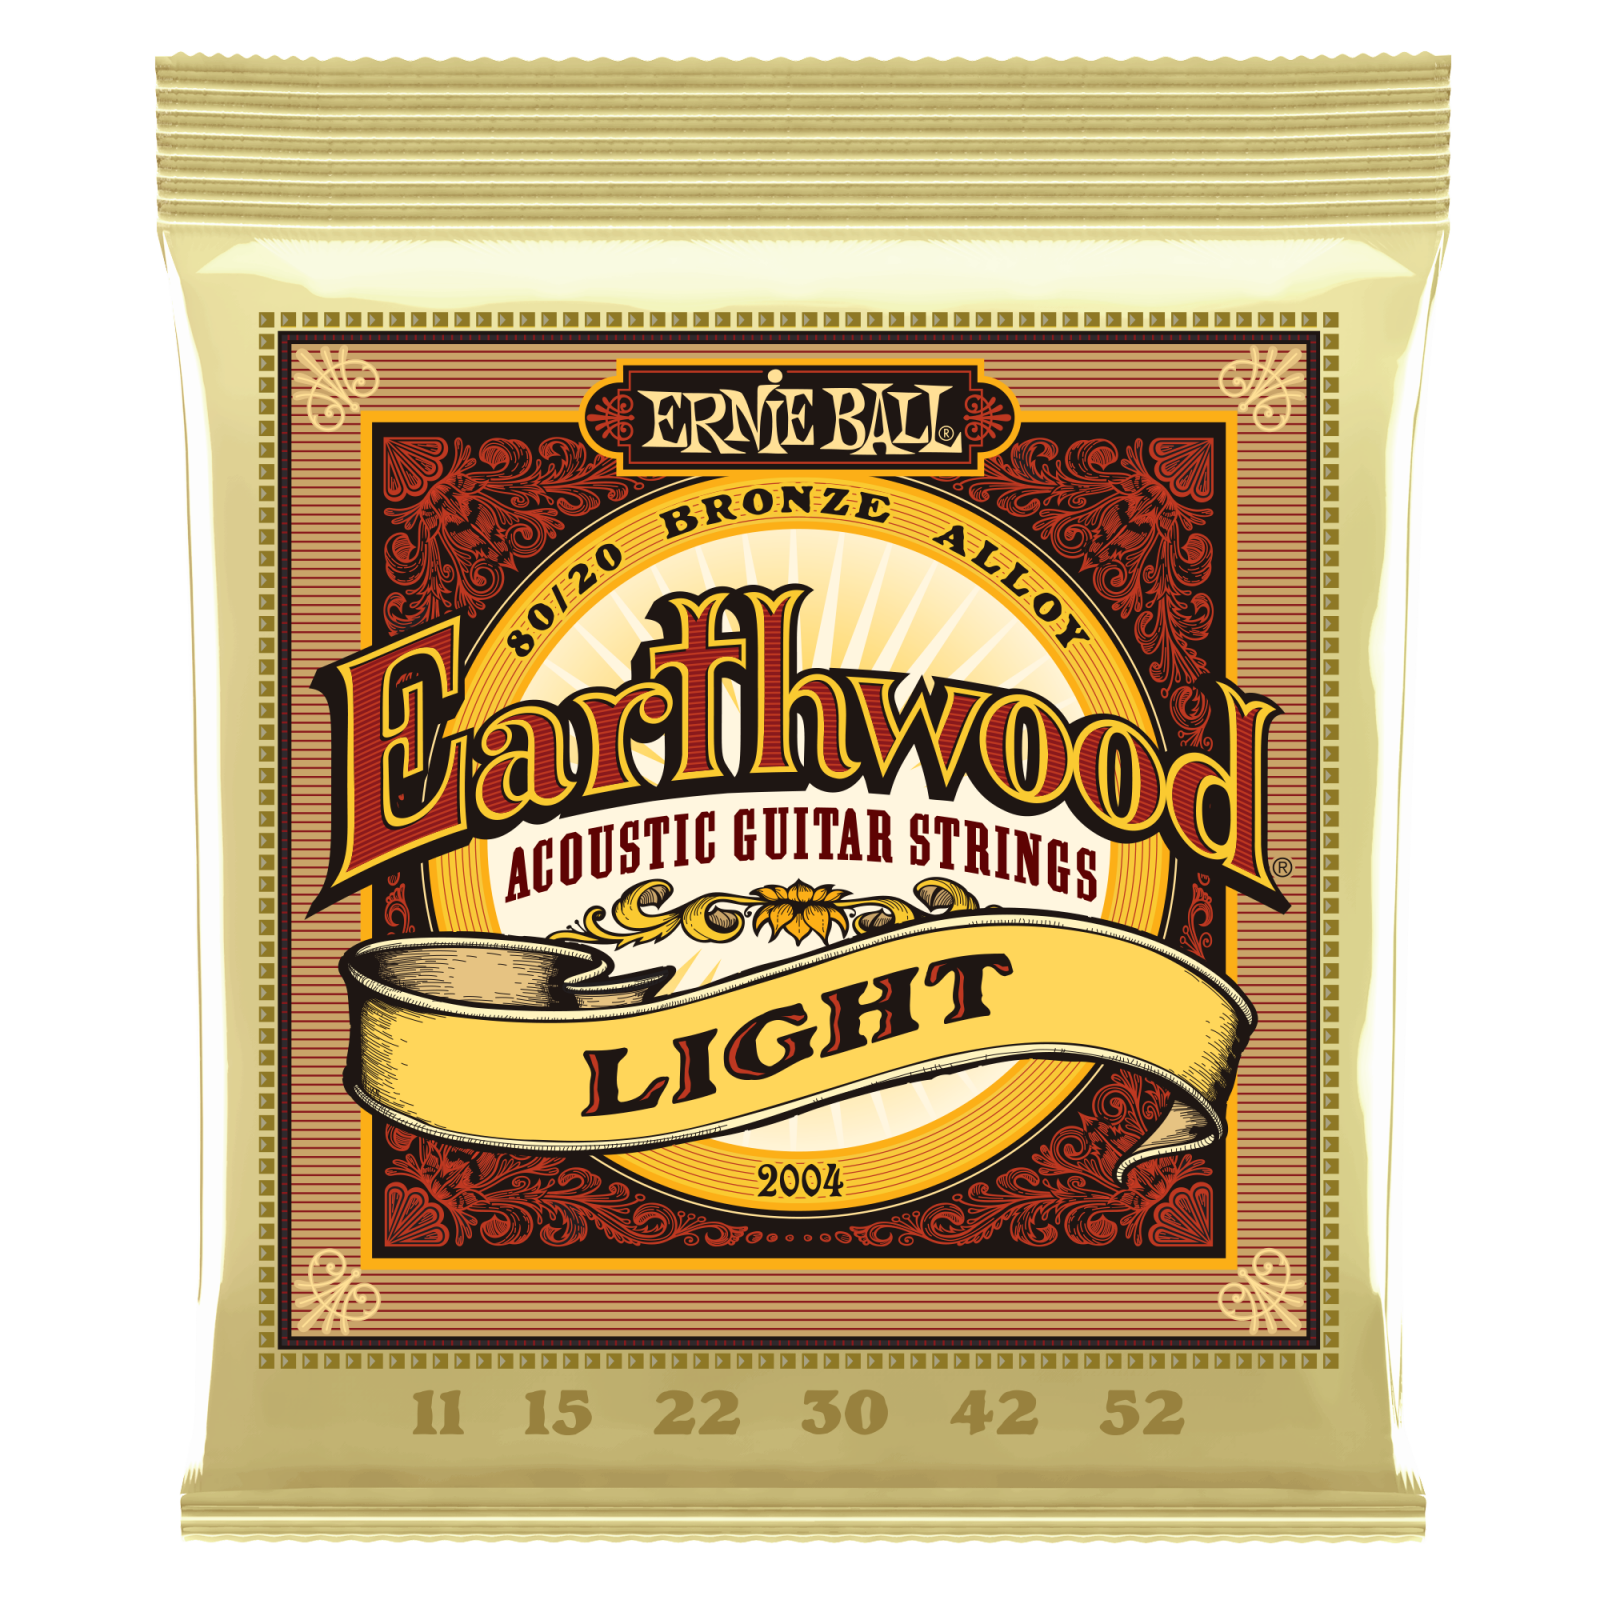 Ernie Ball Earthwood Acoustic Guitar Strings - Light Gauge